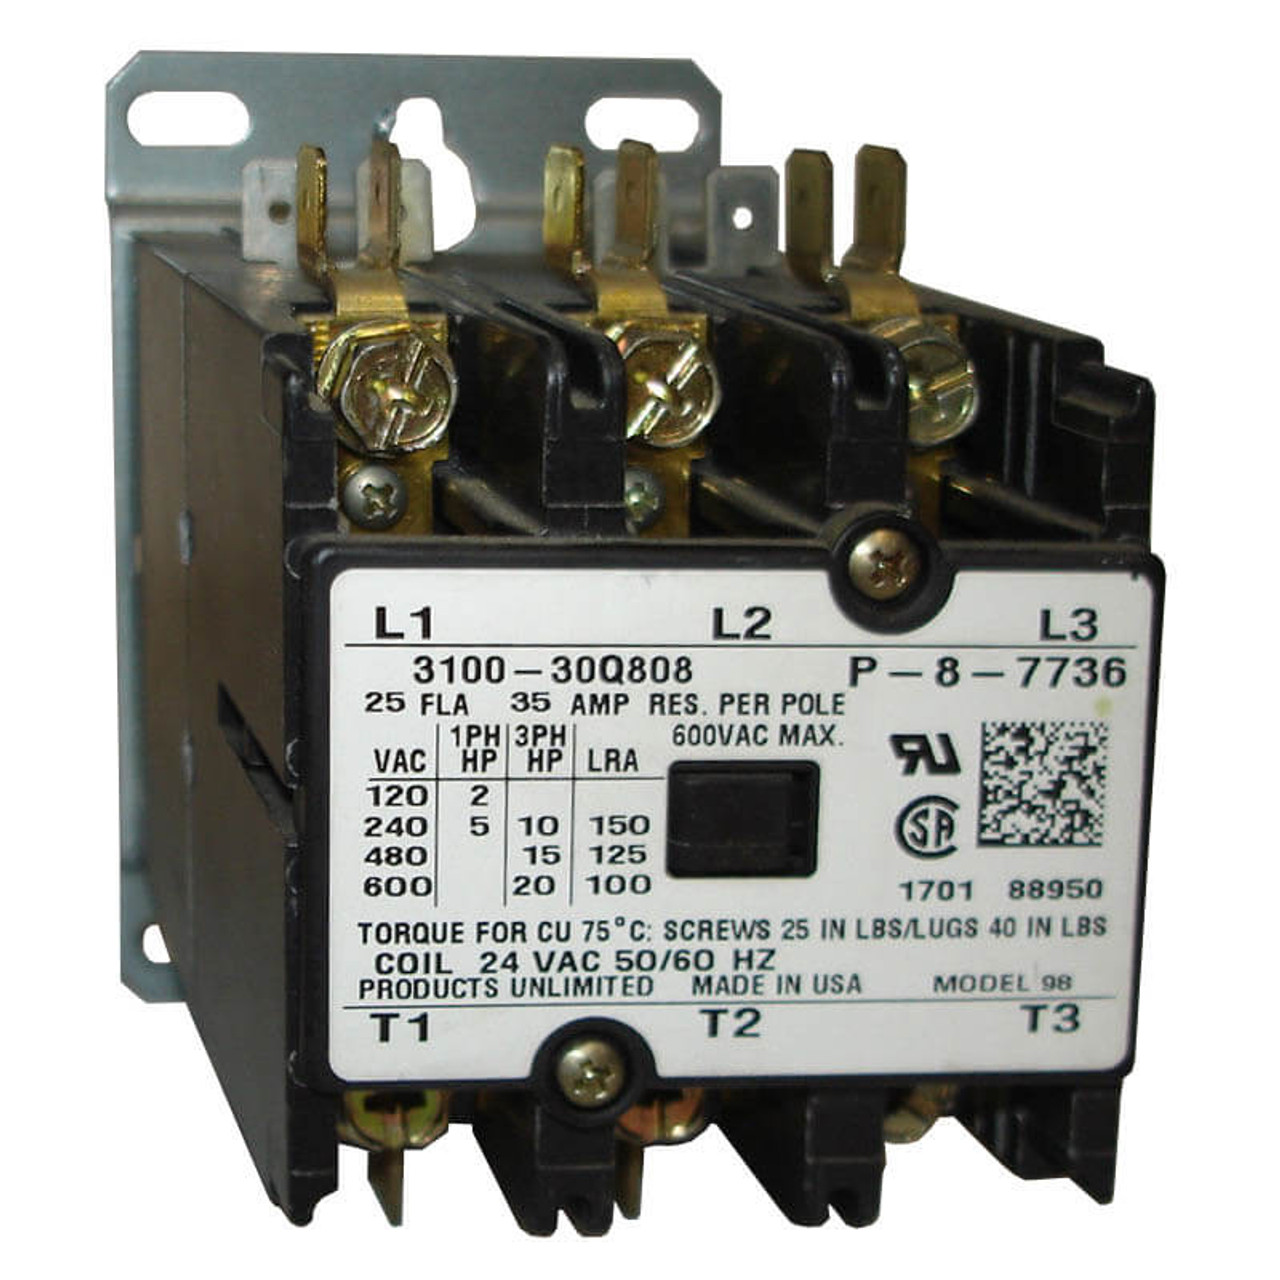 Power Wiring Diagram Additionally 3 Pole Contactor Wiring Diagram